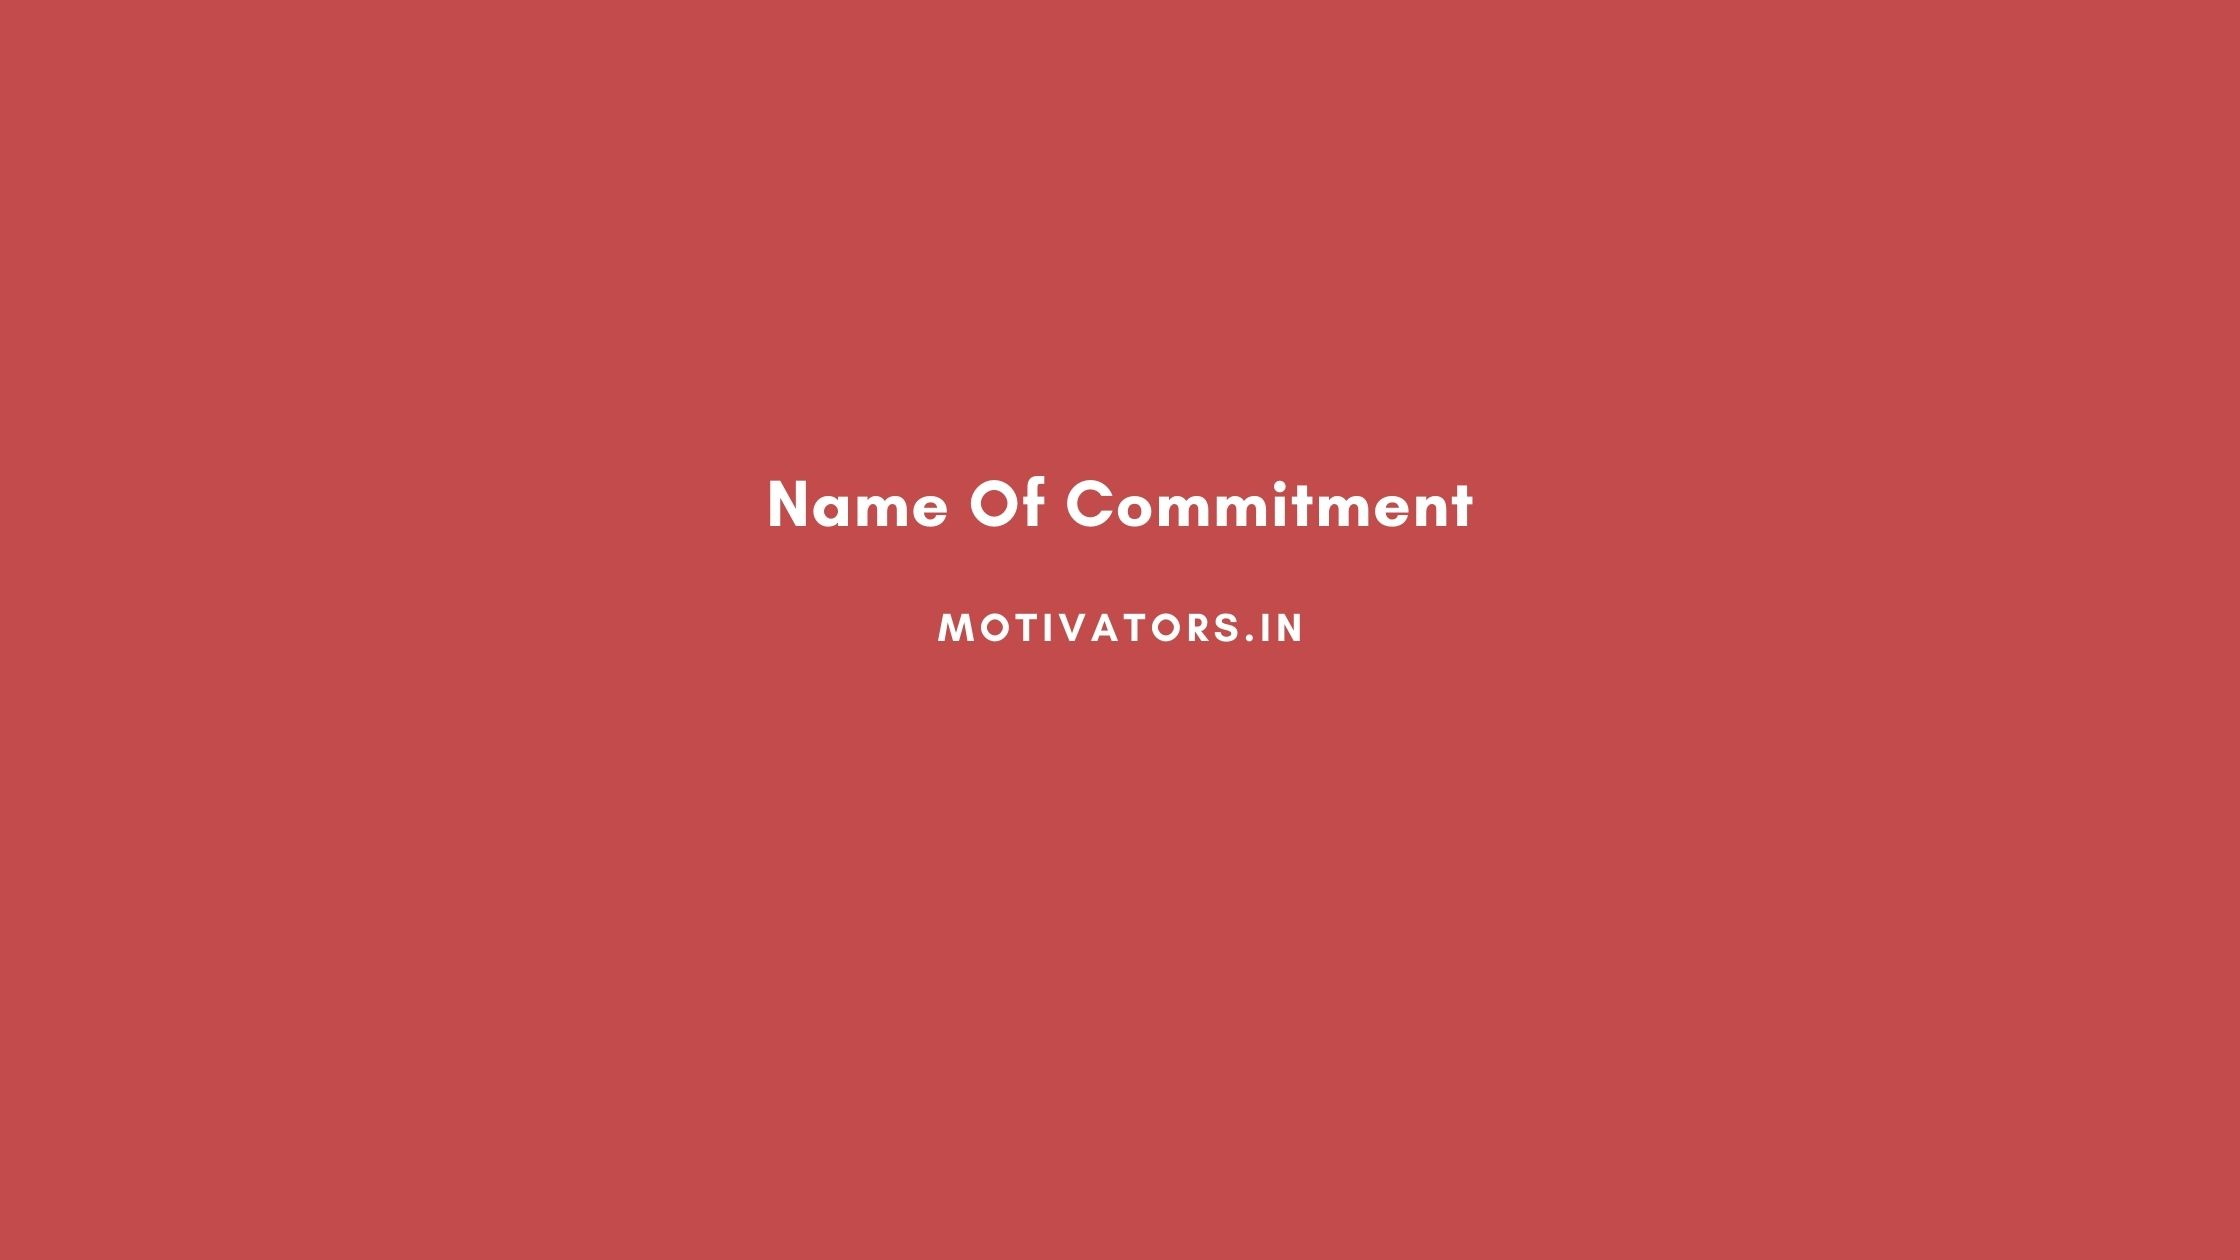 Name Of Commitment